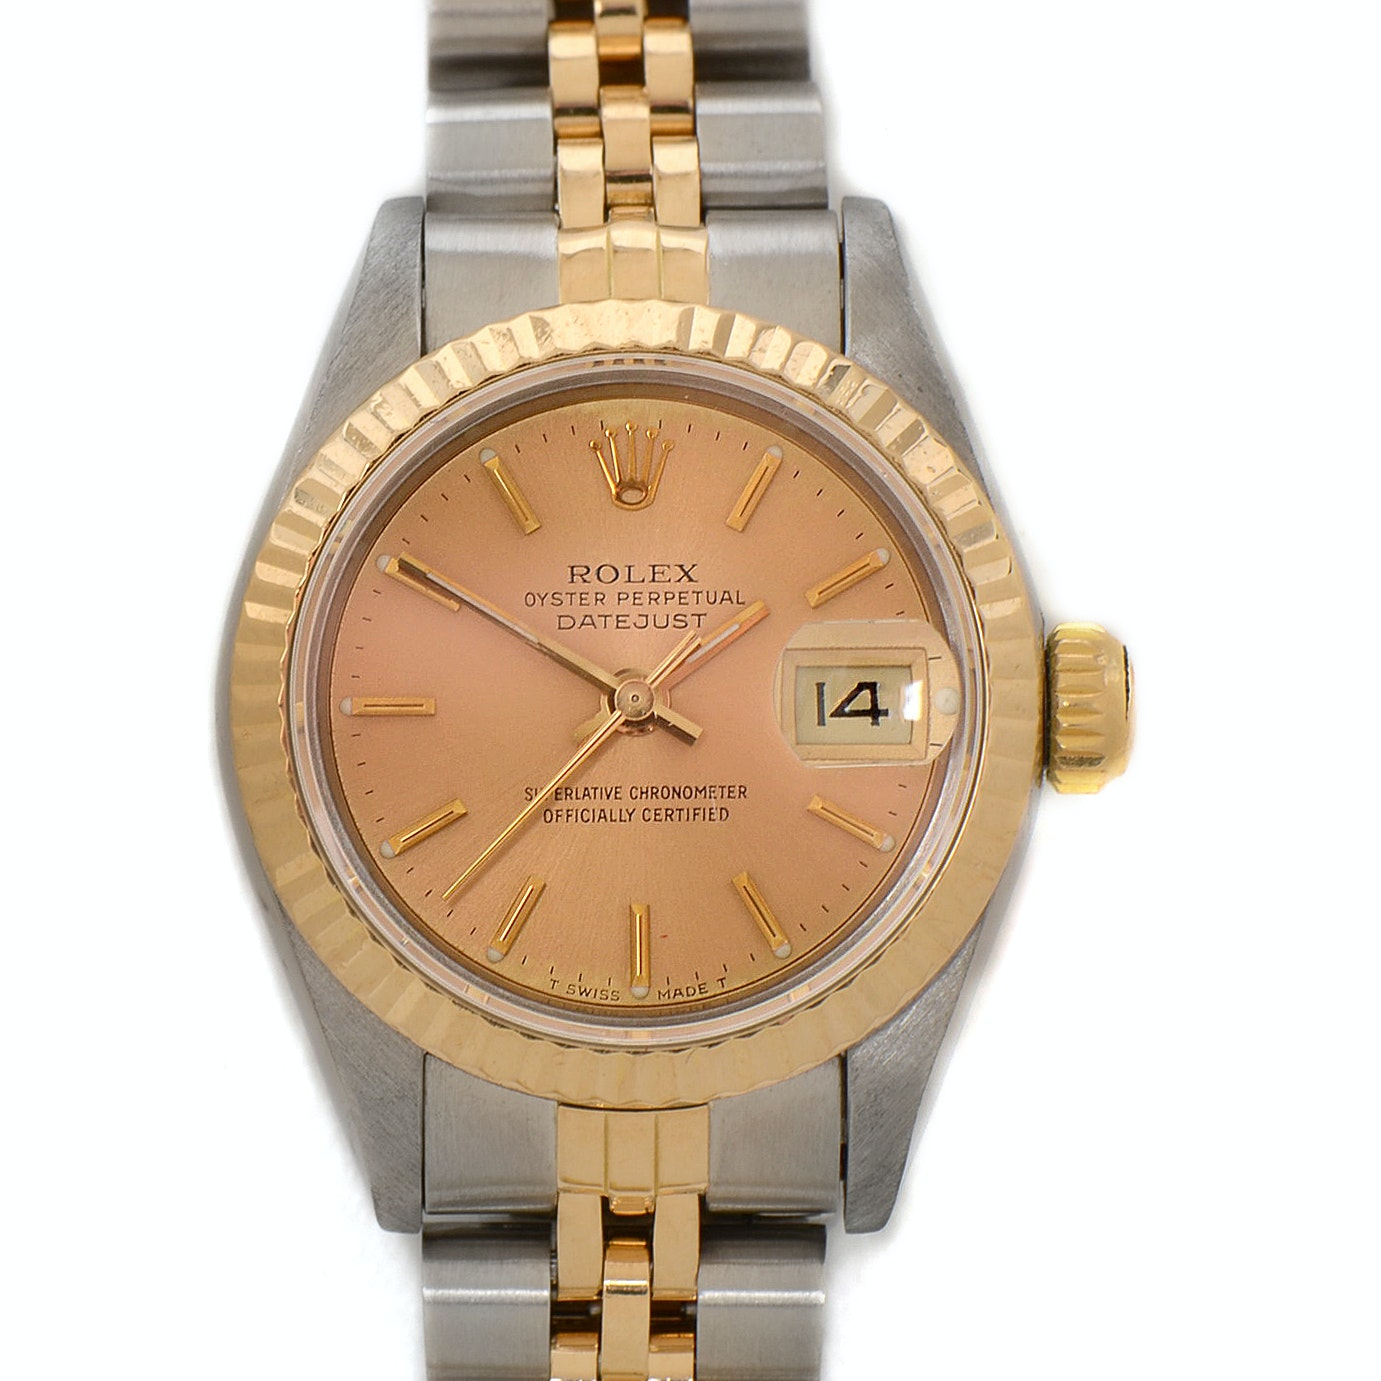 Rolex Datejust 18K Yellow Gold Stainless Steel Champagne Dial 26mm Wristwatch